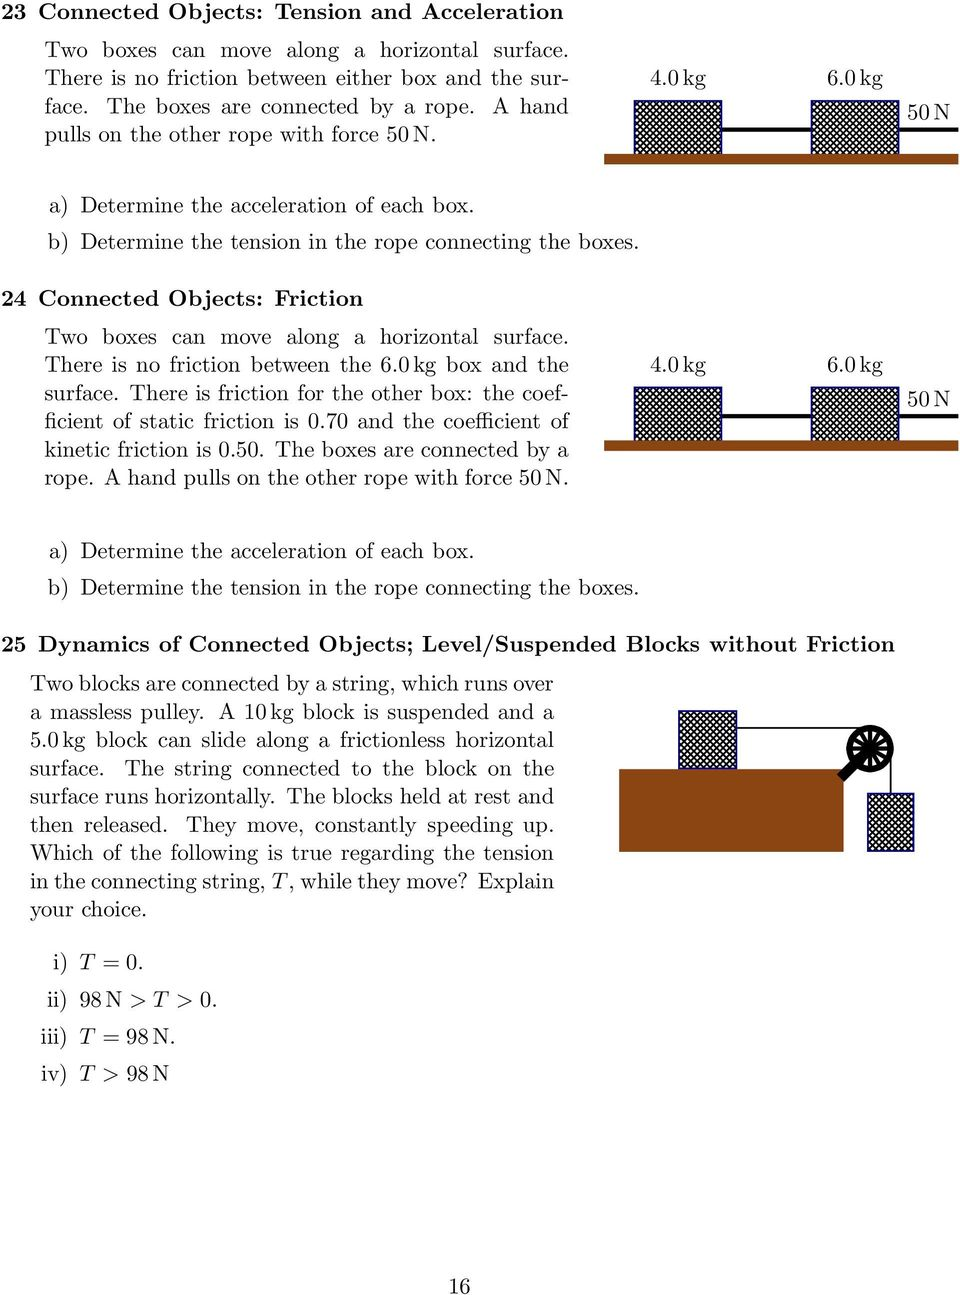 24 Connected Objects: Friction Two boxes can move along a horizontal surface. There is no friction between the 6.0kg box and the surface.